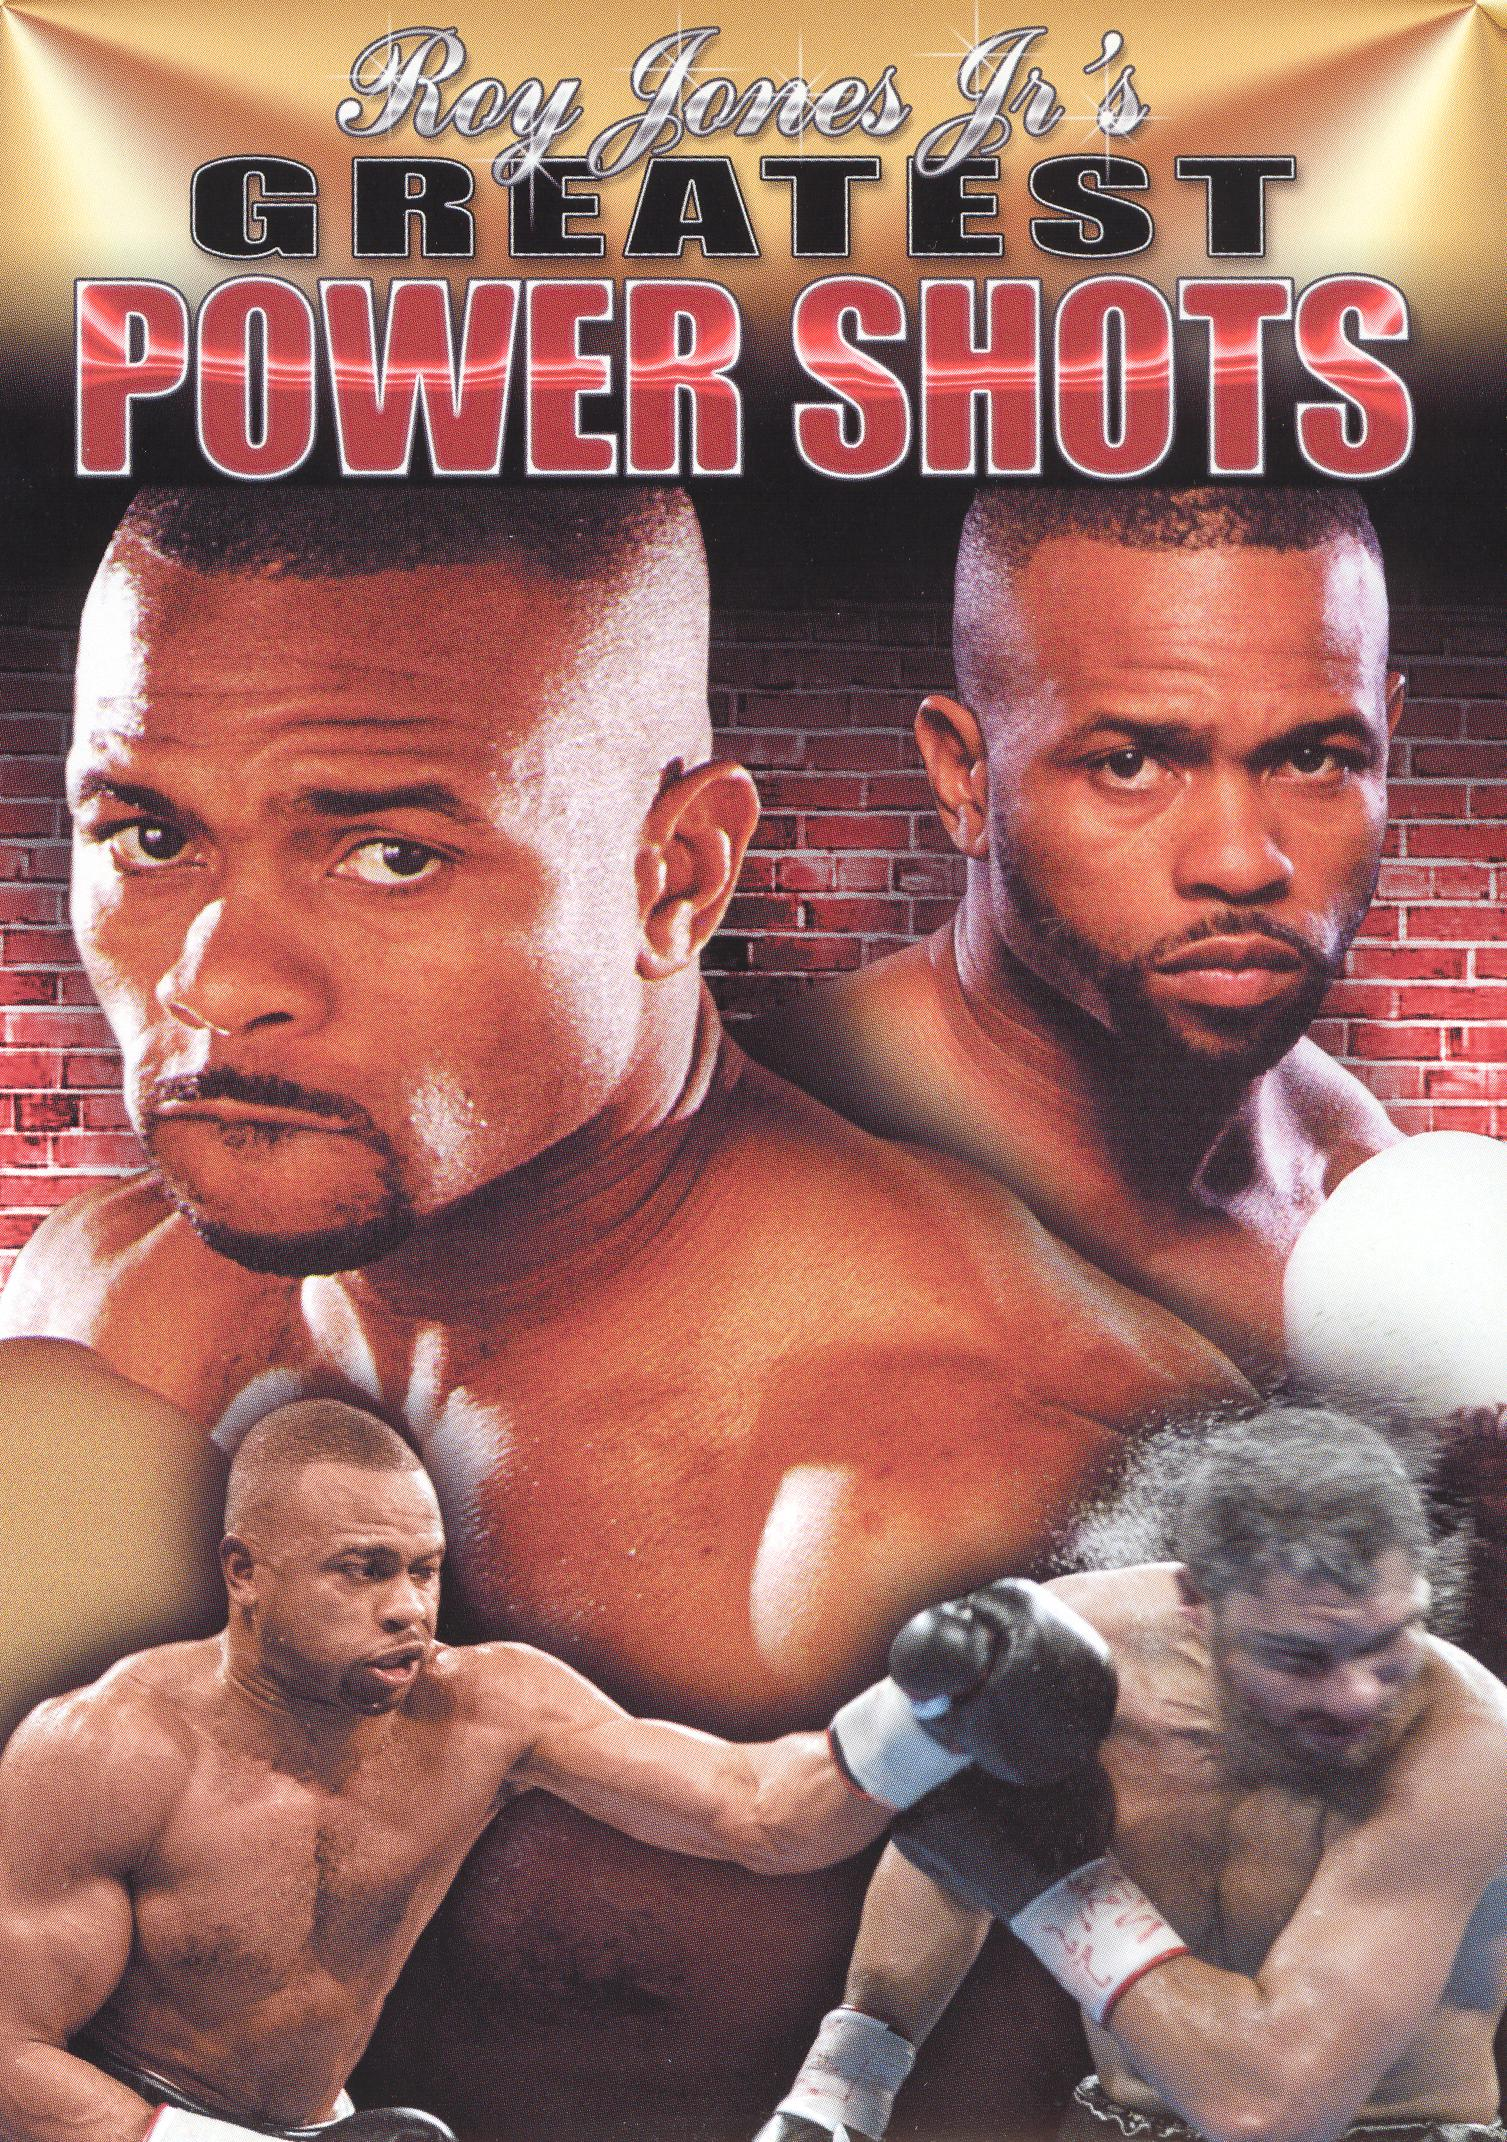 Roy Jones, Jr.'s Greatest Power Shots